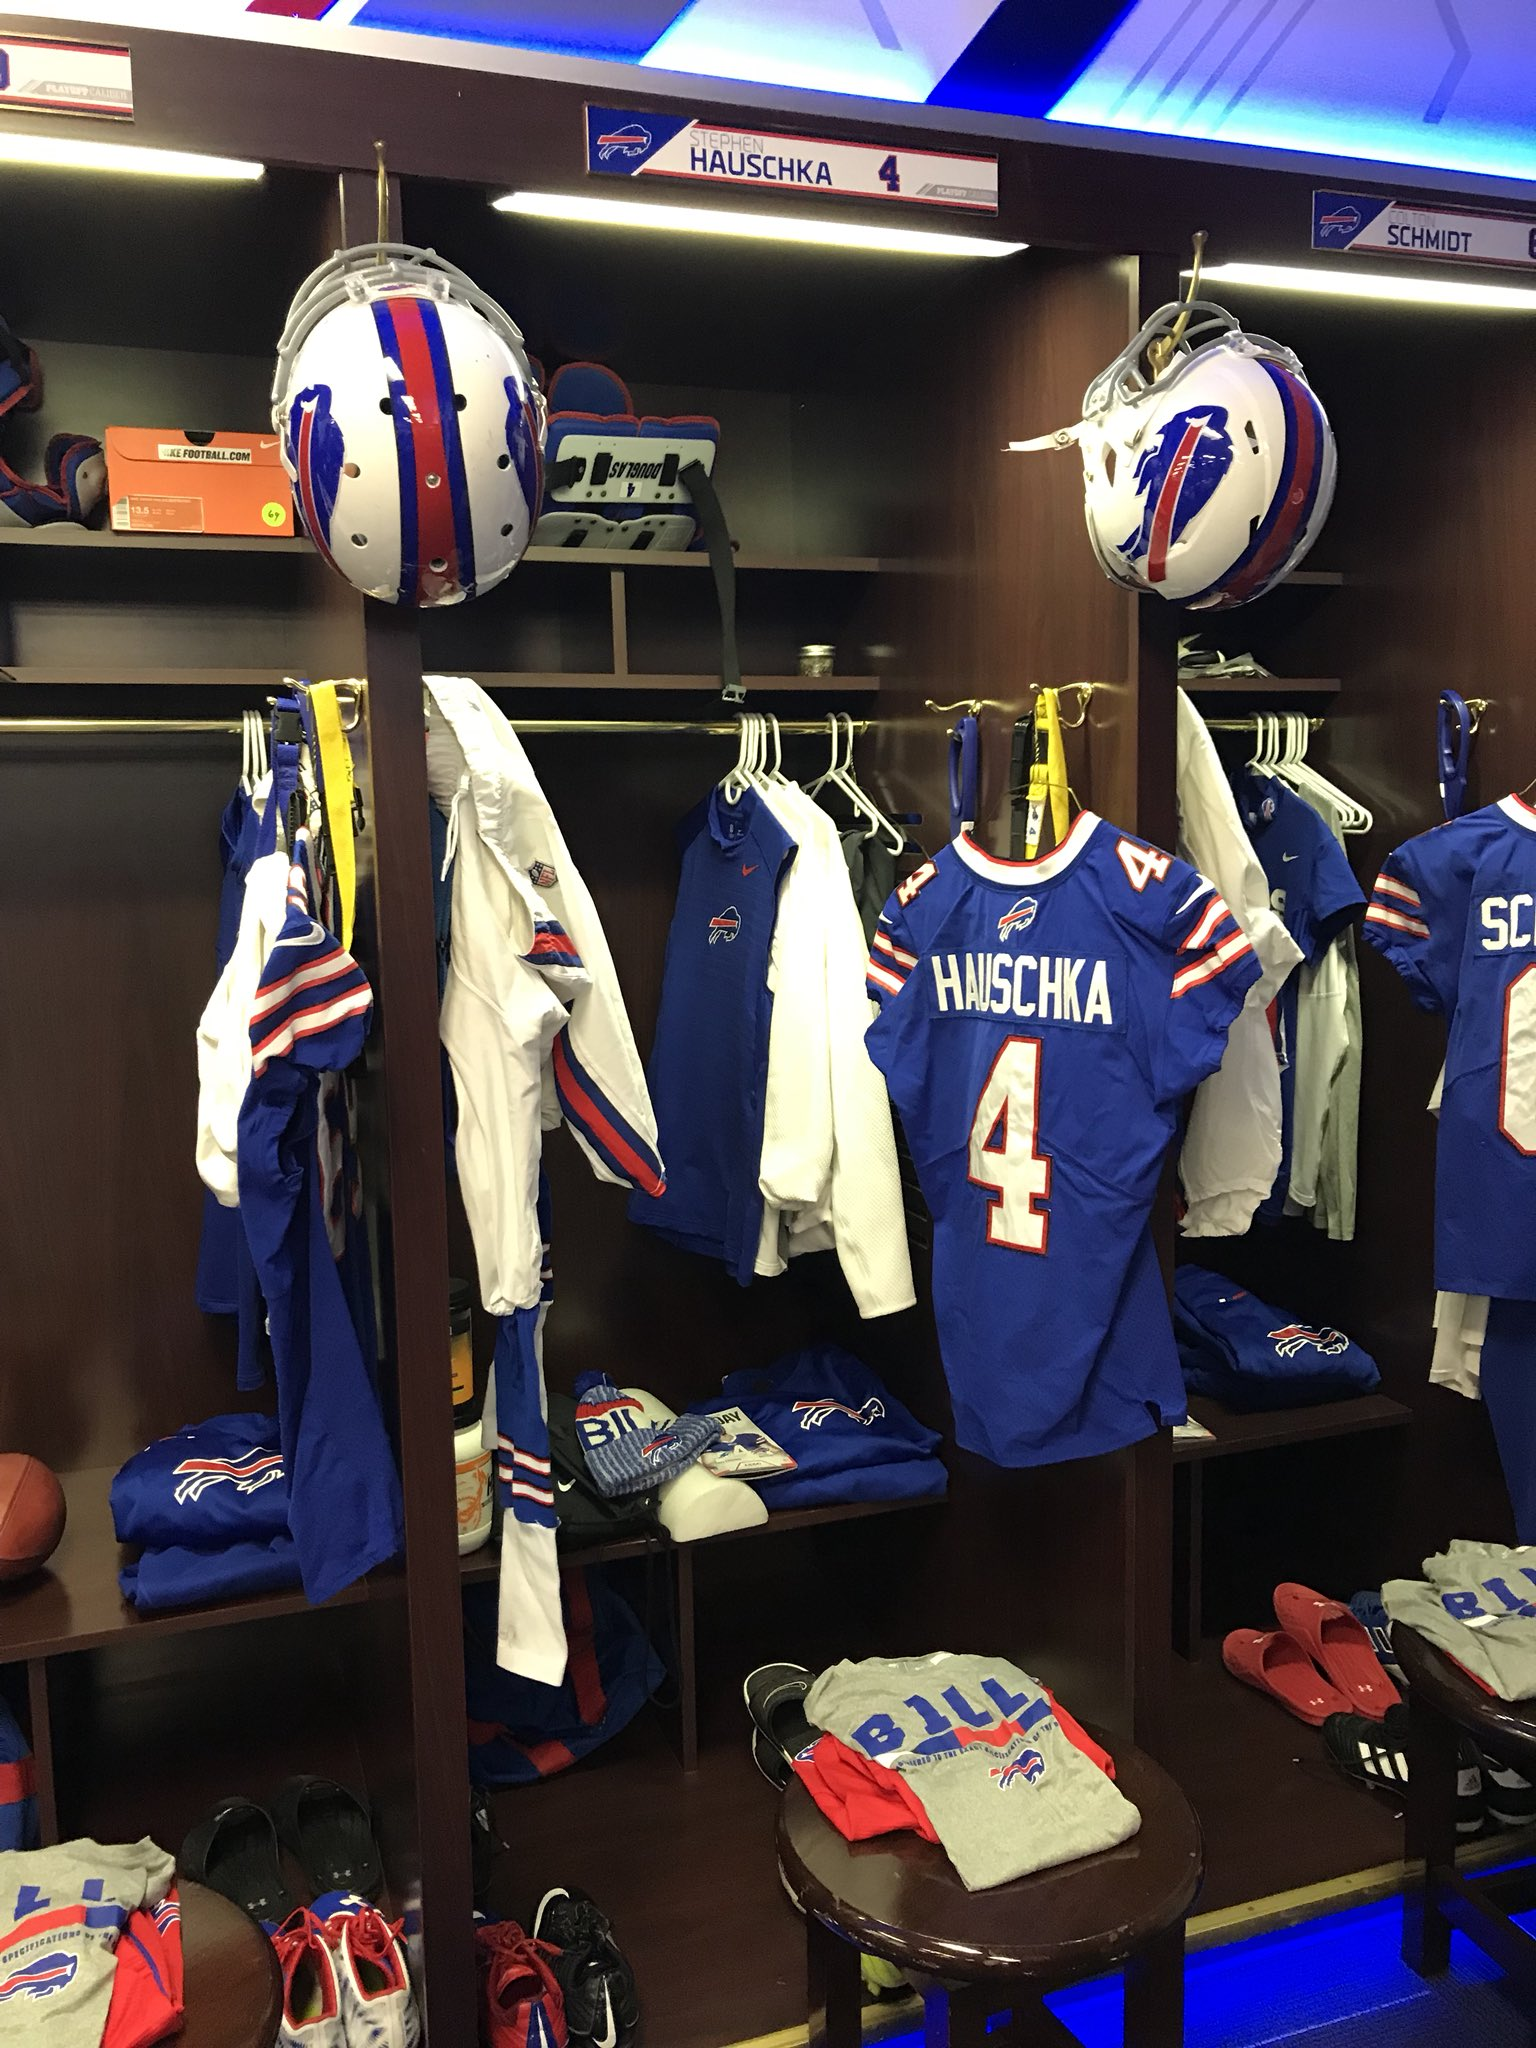 Blue jerseys white pants tomorrow at home v Miami Go #Bills https://t.co/wT4hgR8zsR